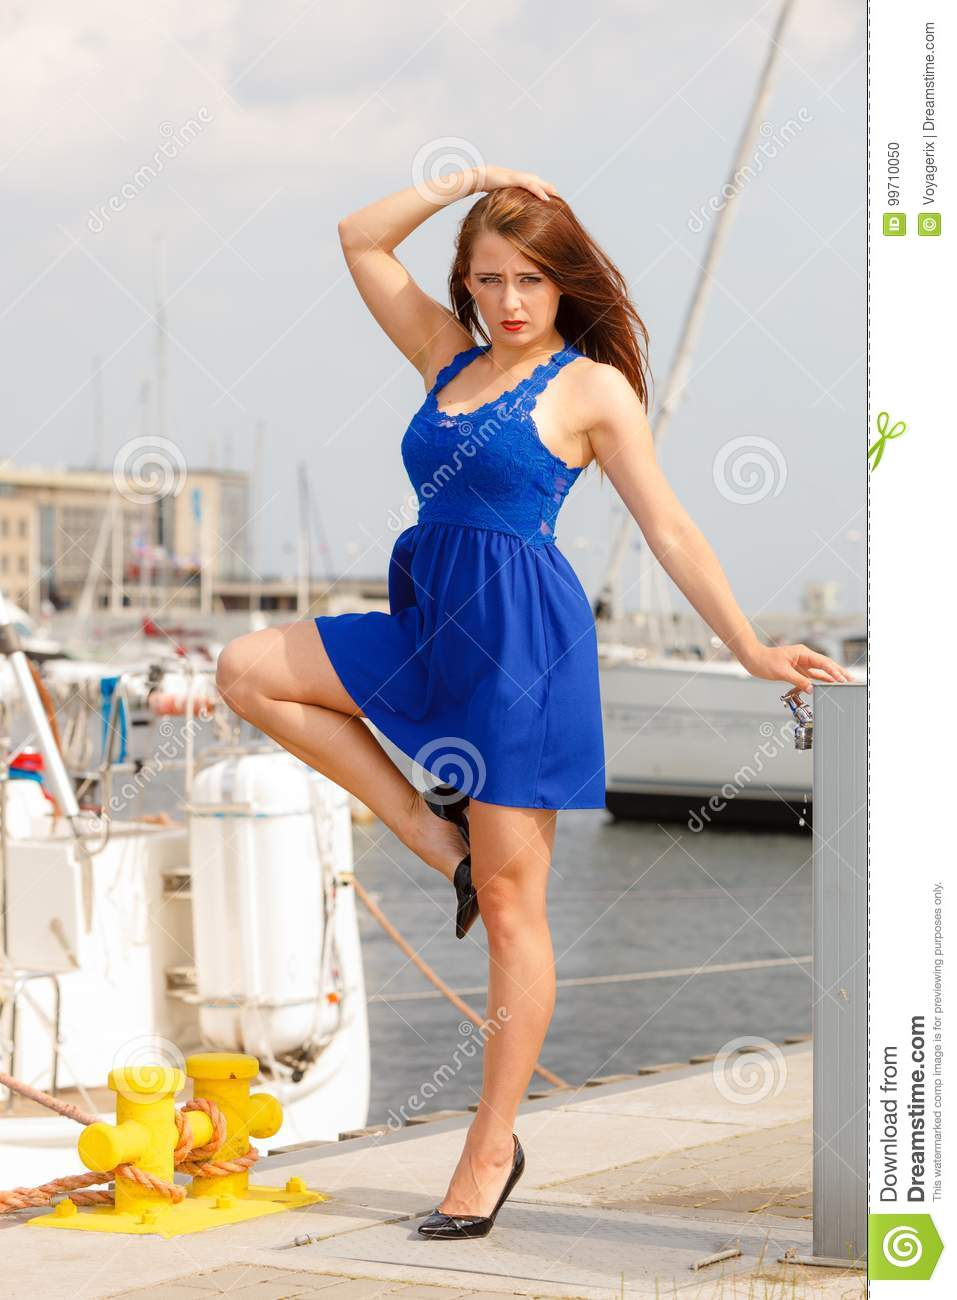 a6e1141a Dominant feminist woman wearing high heels and short blue dress, standing  one leg on big industrial bolt in marina.